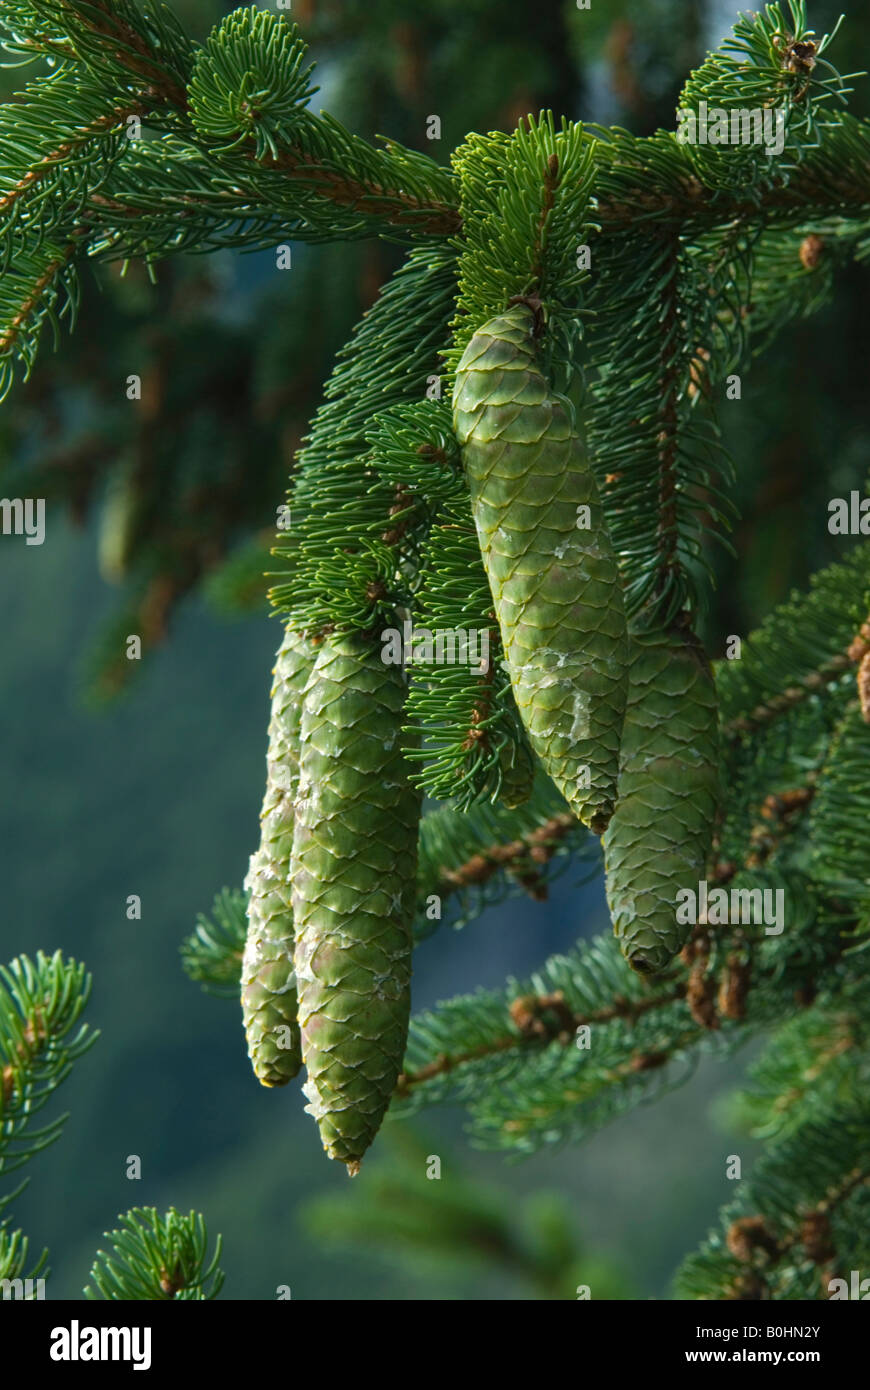 Norway Spruce (Picea abies) branches and cones, in Gaistal, Tyrol, Austria, Europe - Stock Image